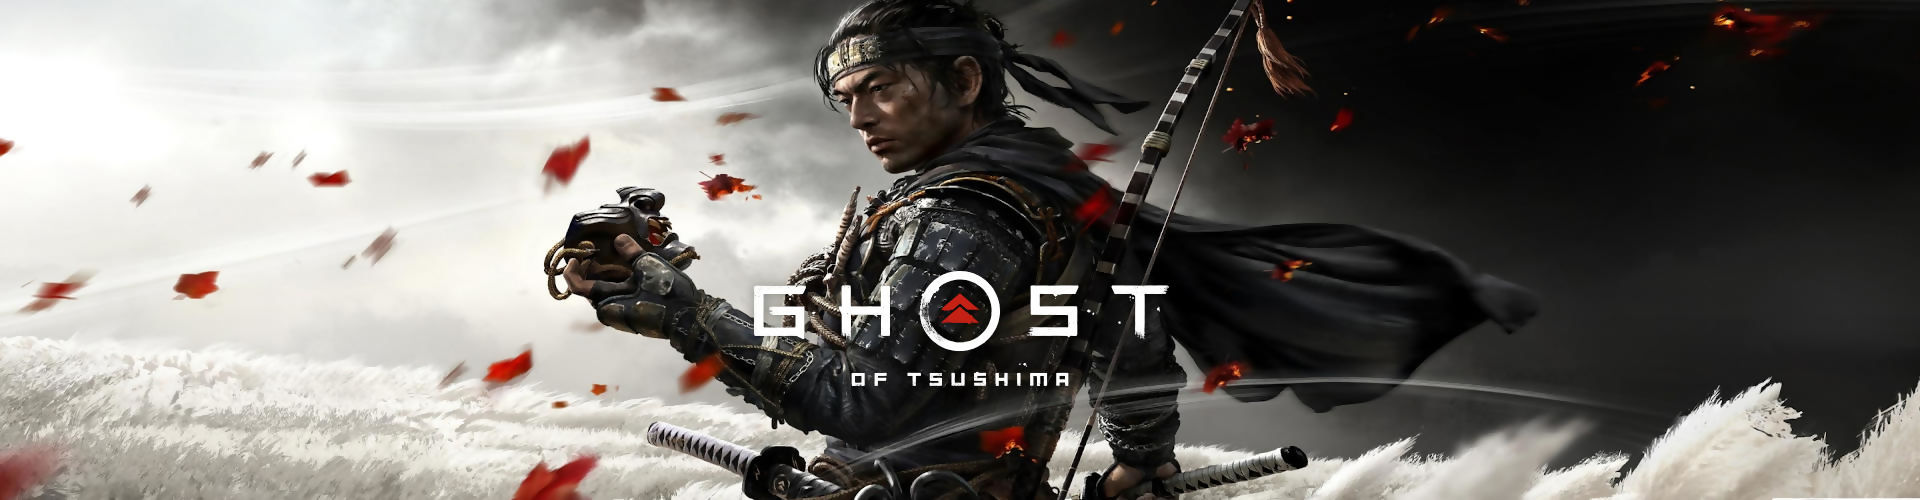 Check out all the Ghost of Tsushima reviews